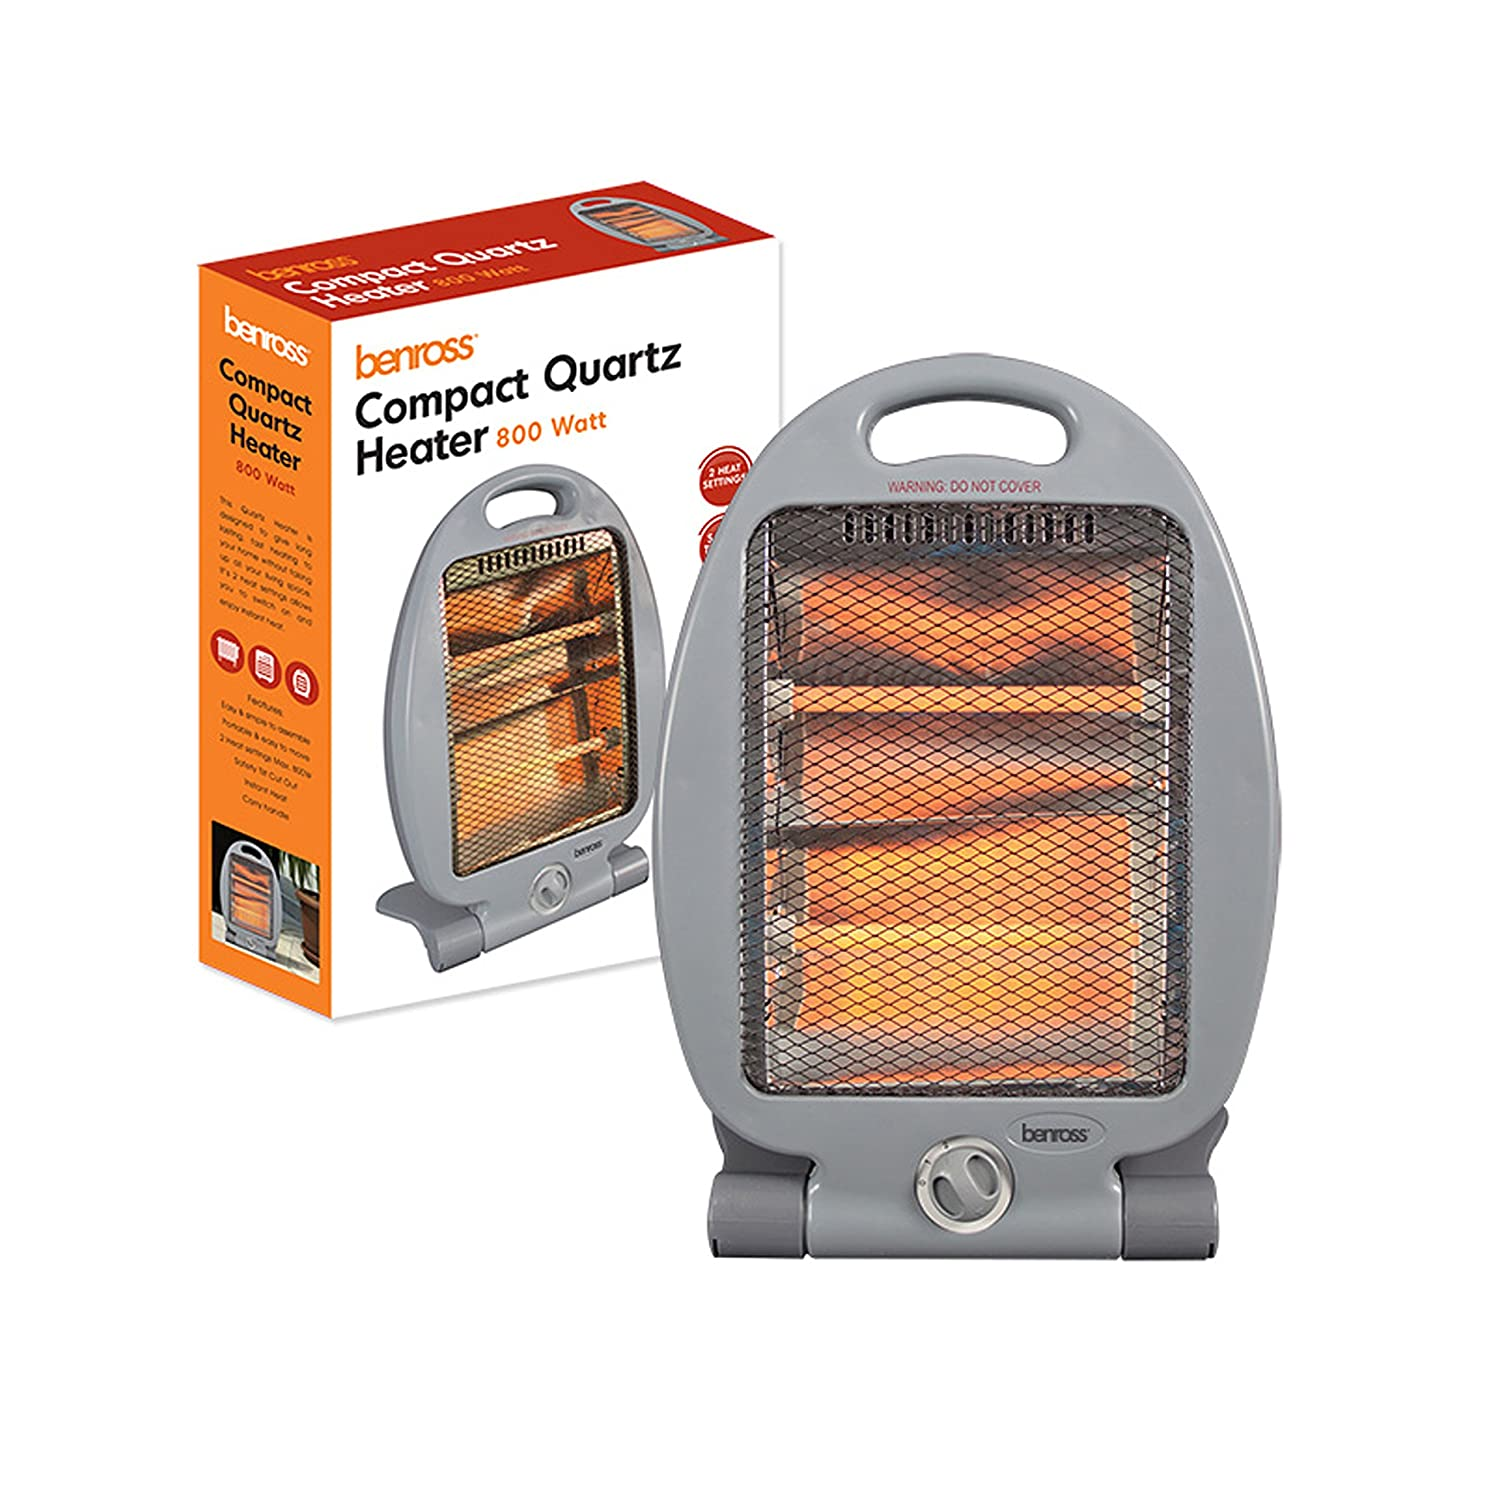 Benross Compact Quarz Heater, 800 Watt Benross Marketing Ltd 41550